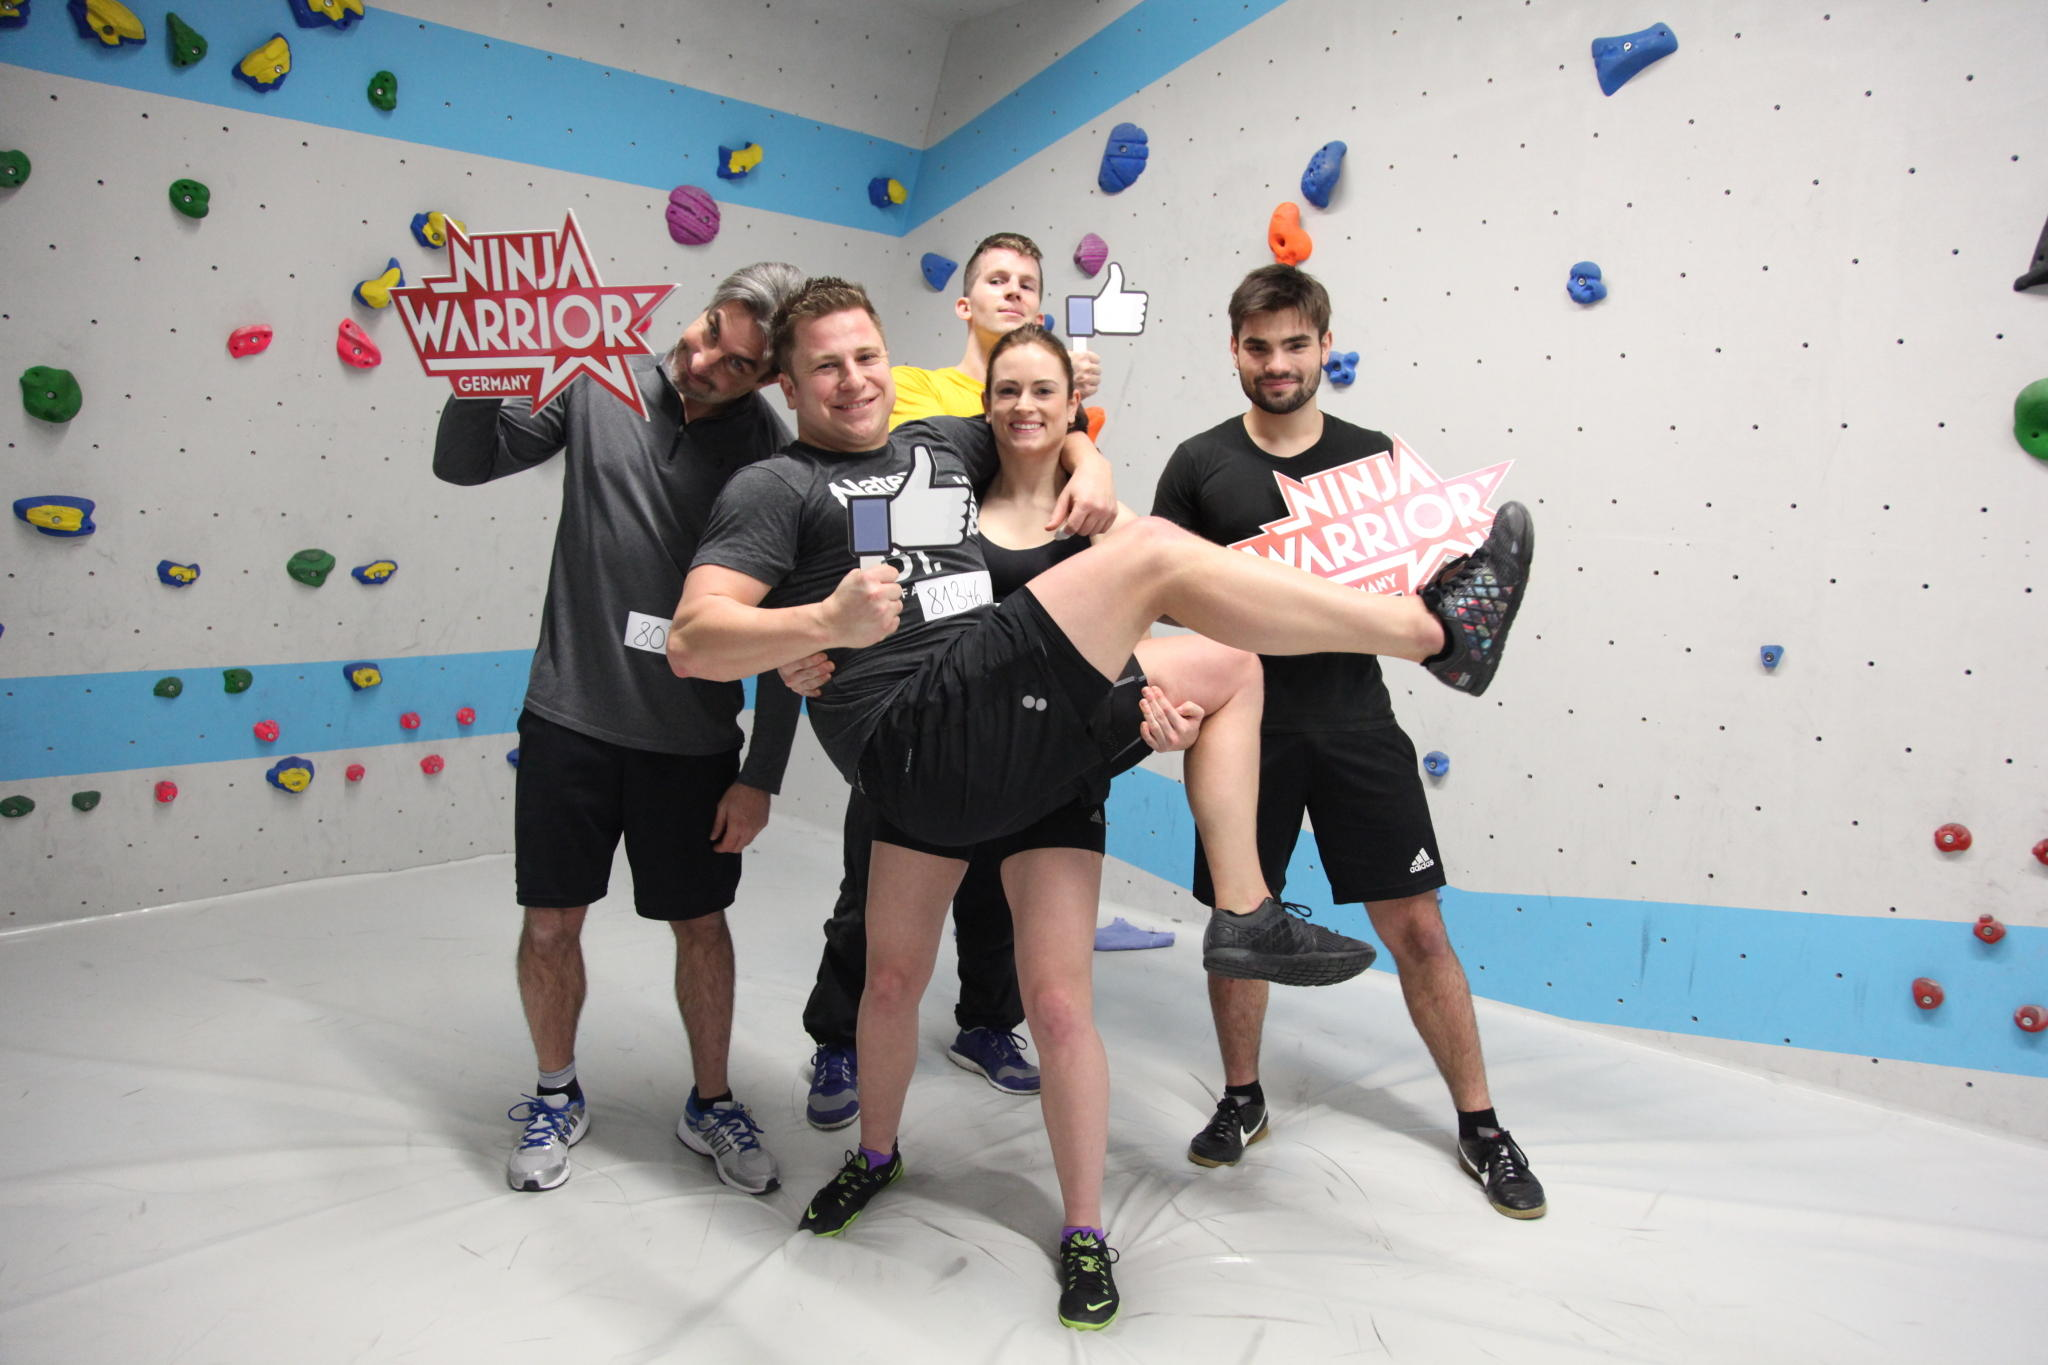 Casting Ninja Warrior Germany